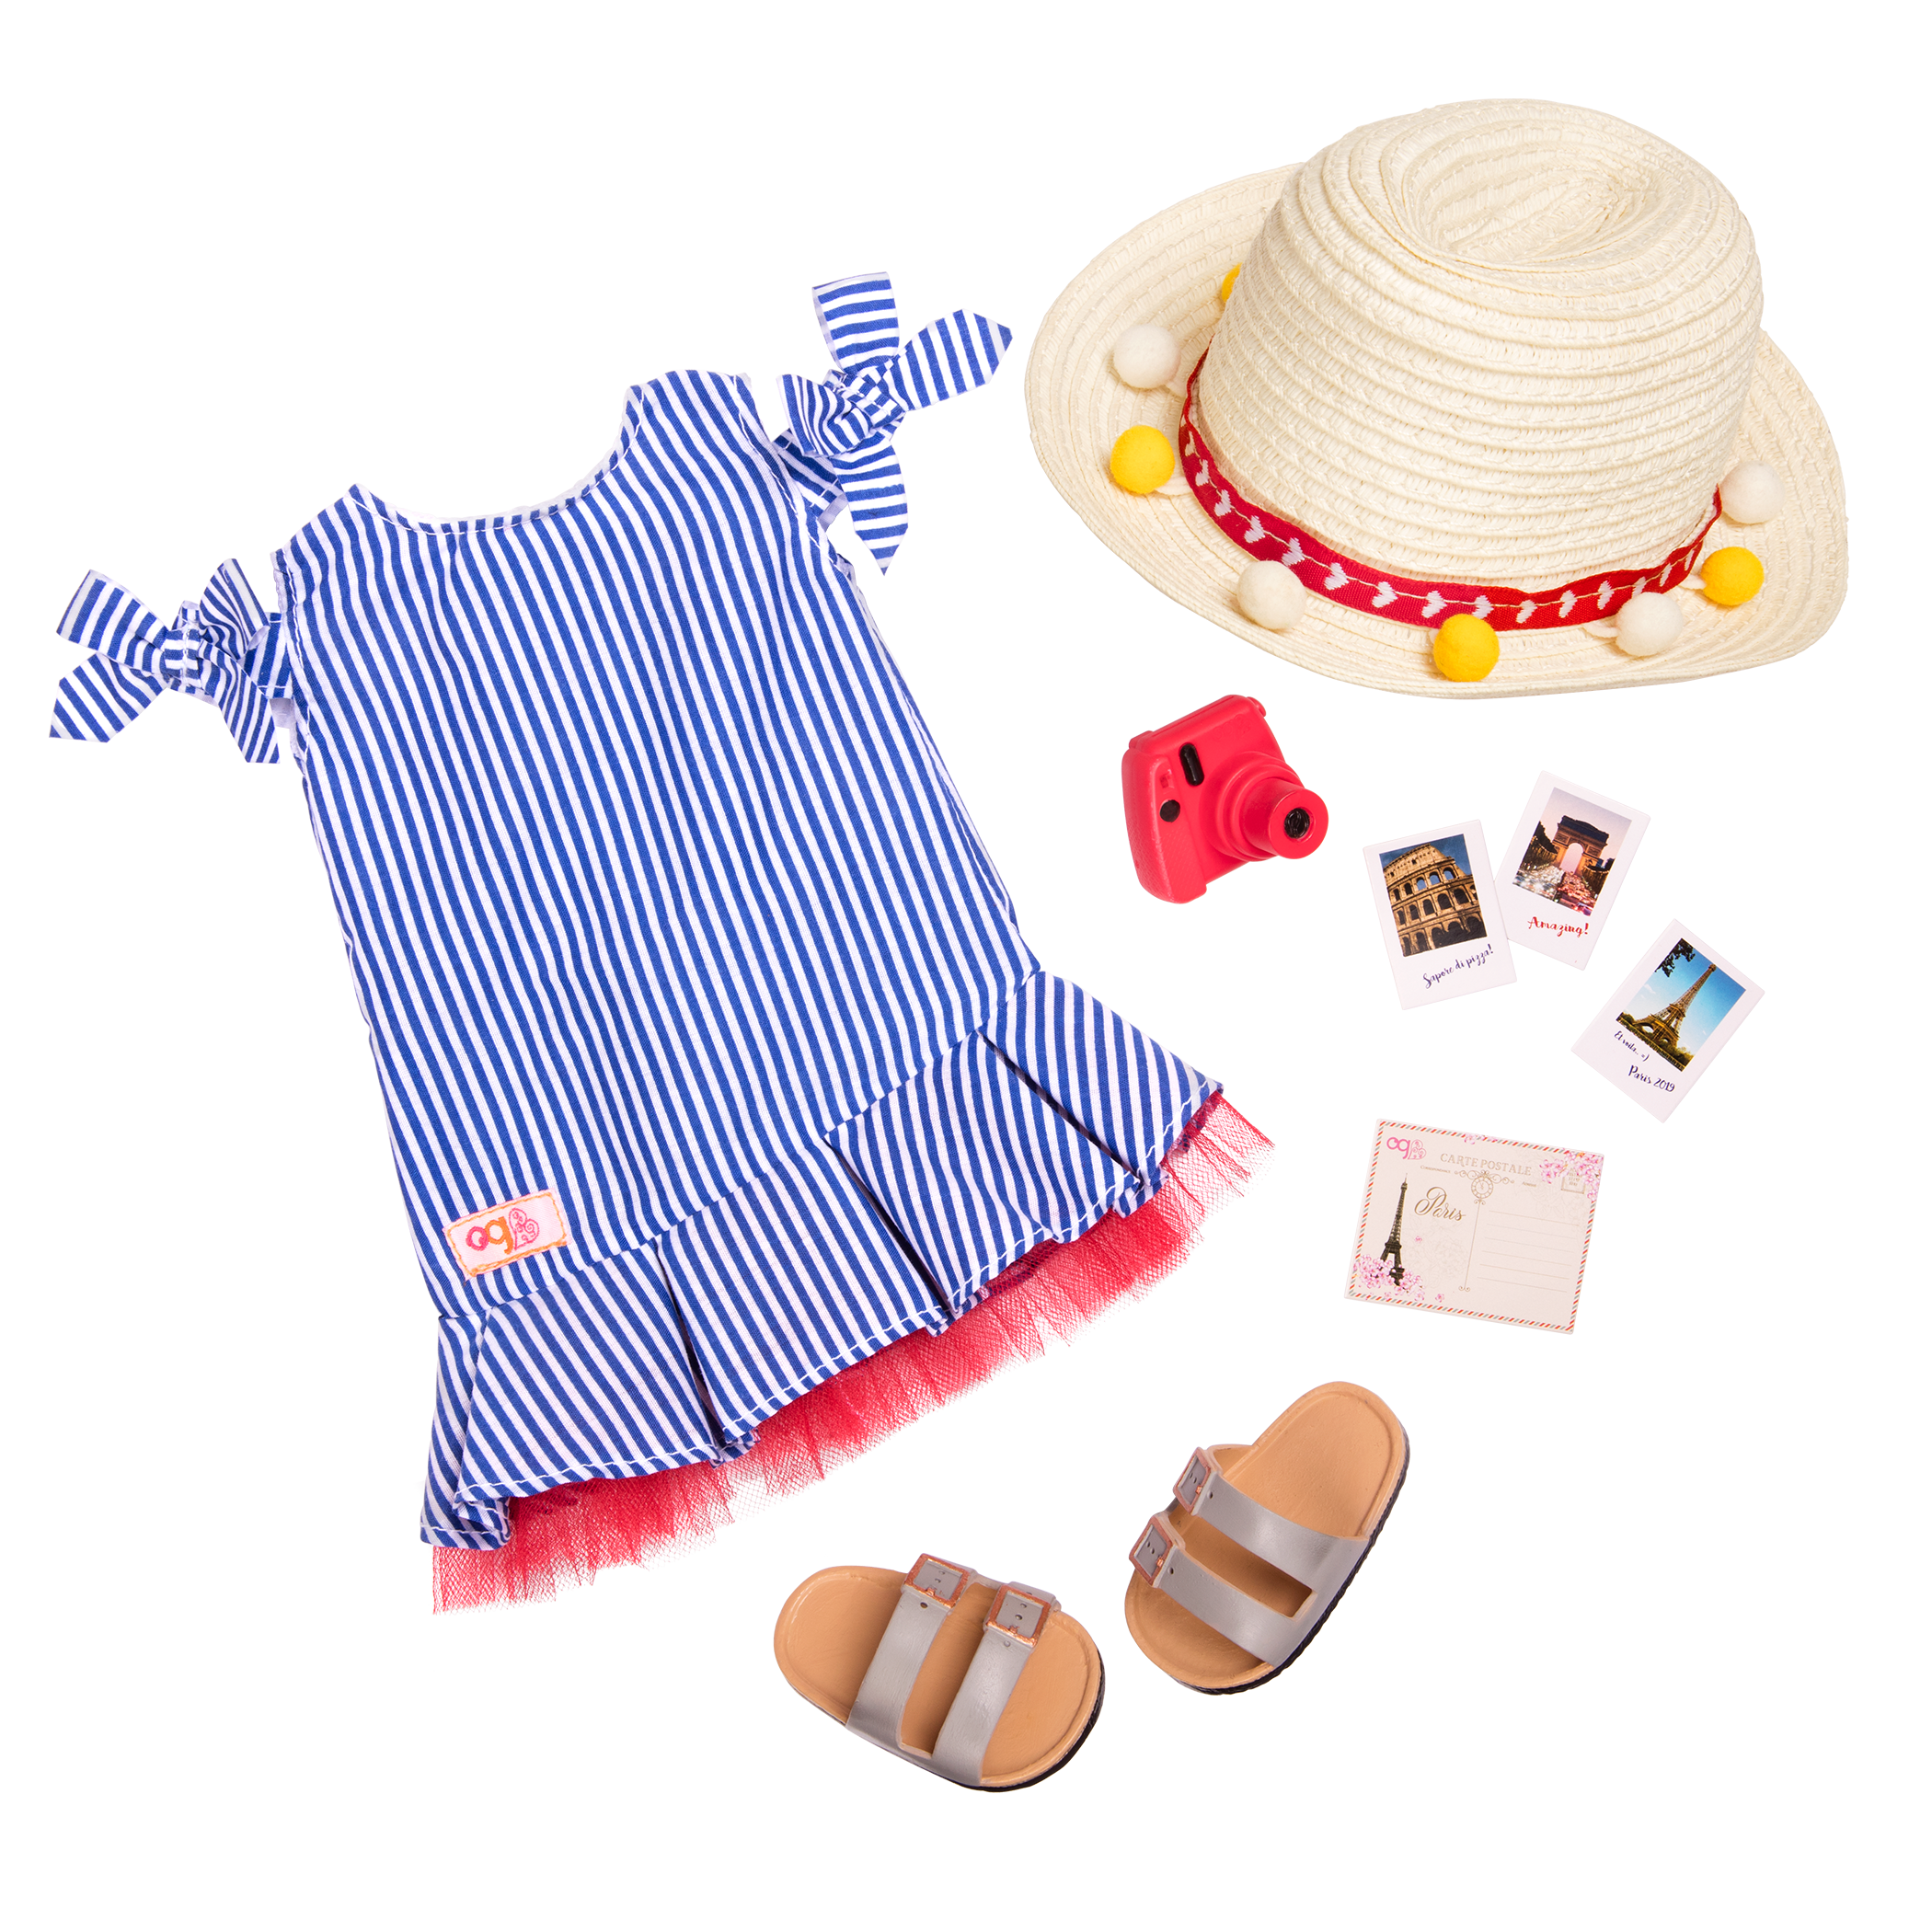 Sweet Souvenirs 18 Inch Doll Outfit Our Generation